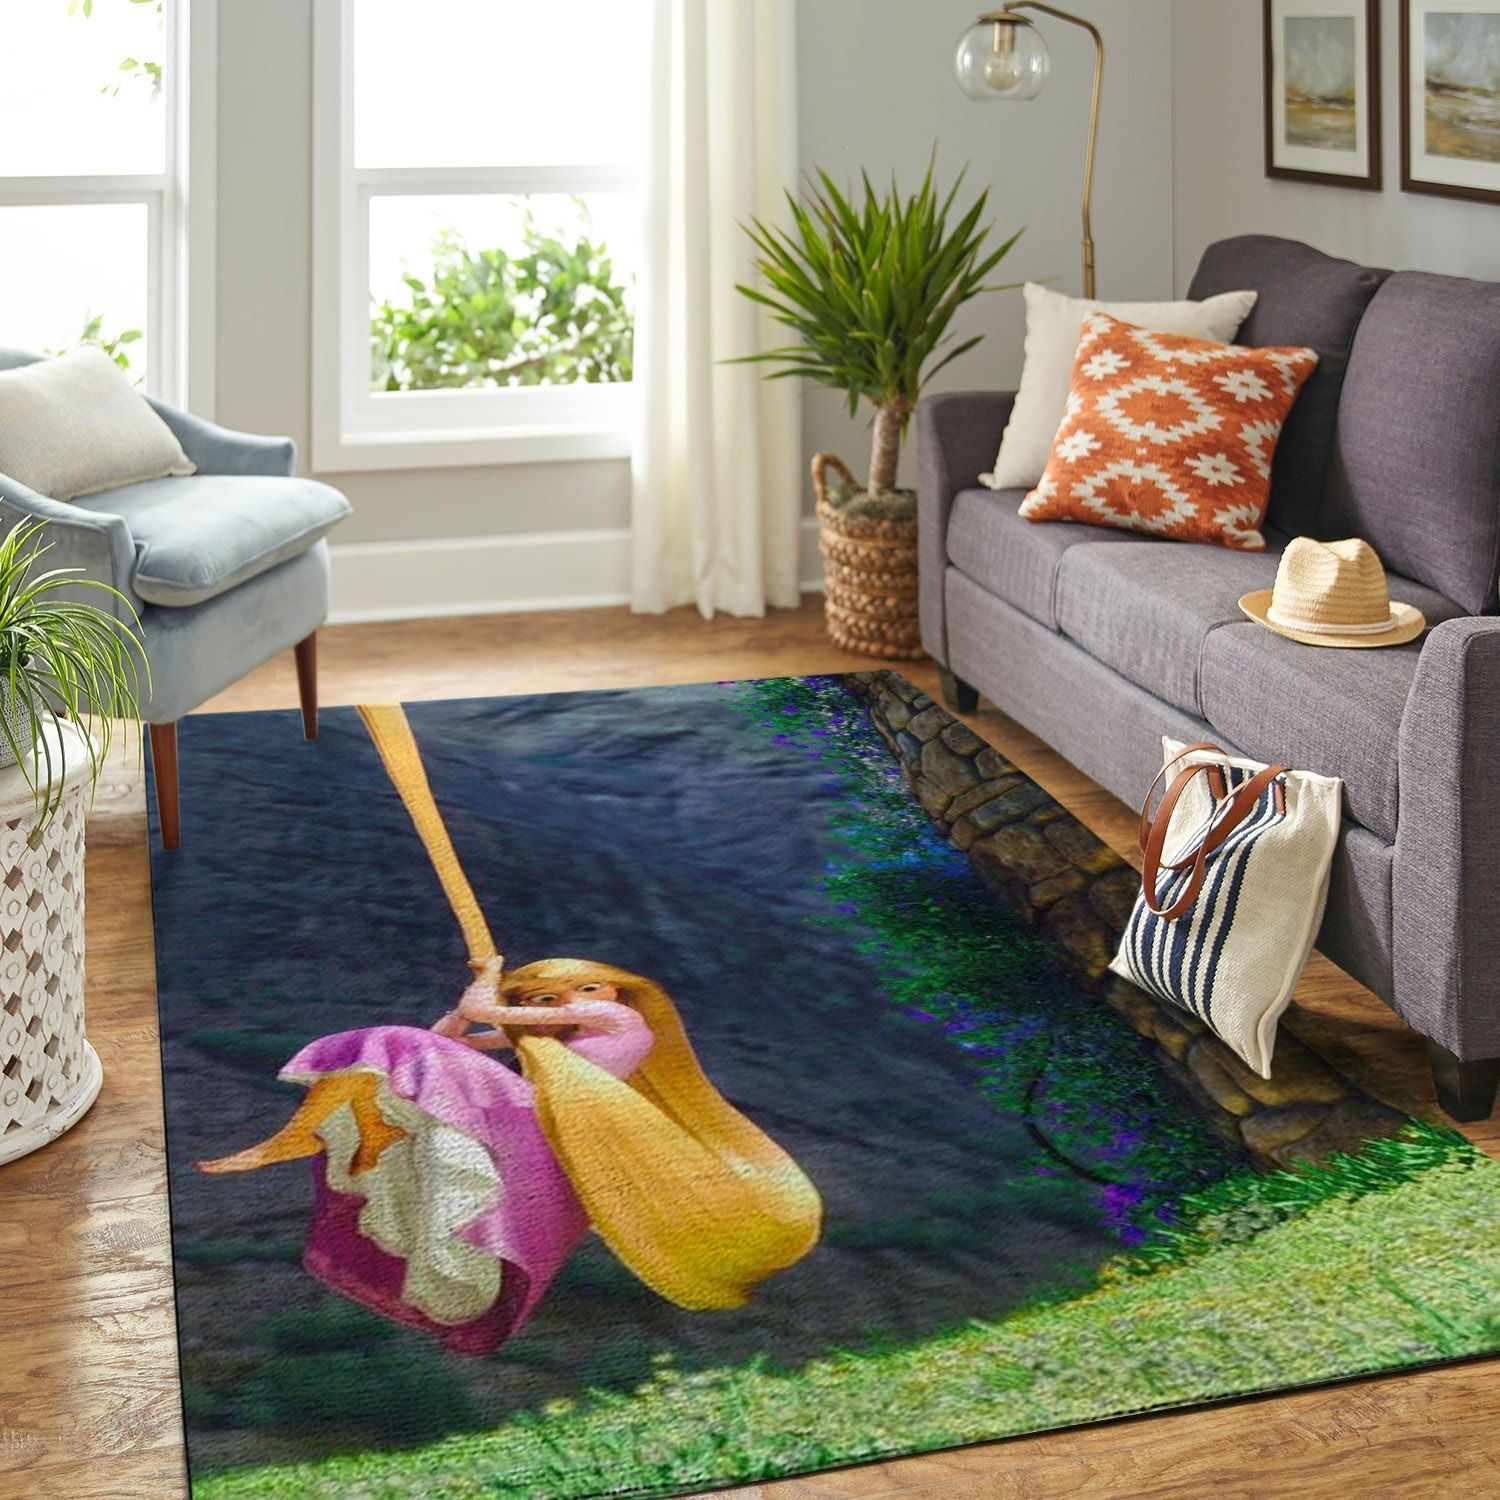 Amazon Tangled Disney Movie Living Room Area No6682 Rug